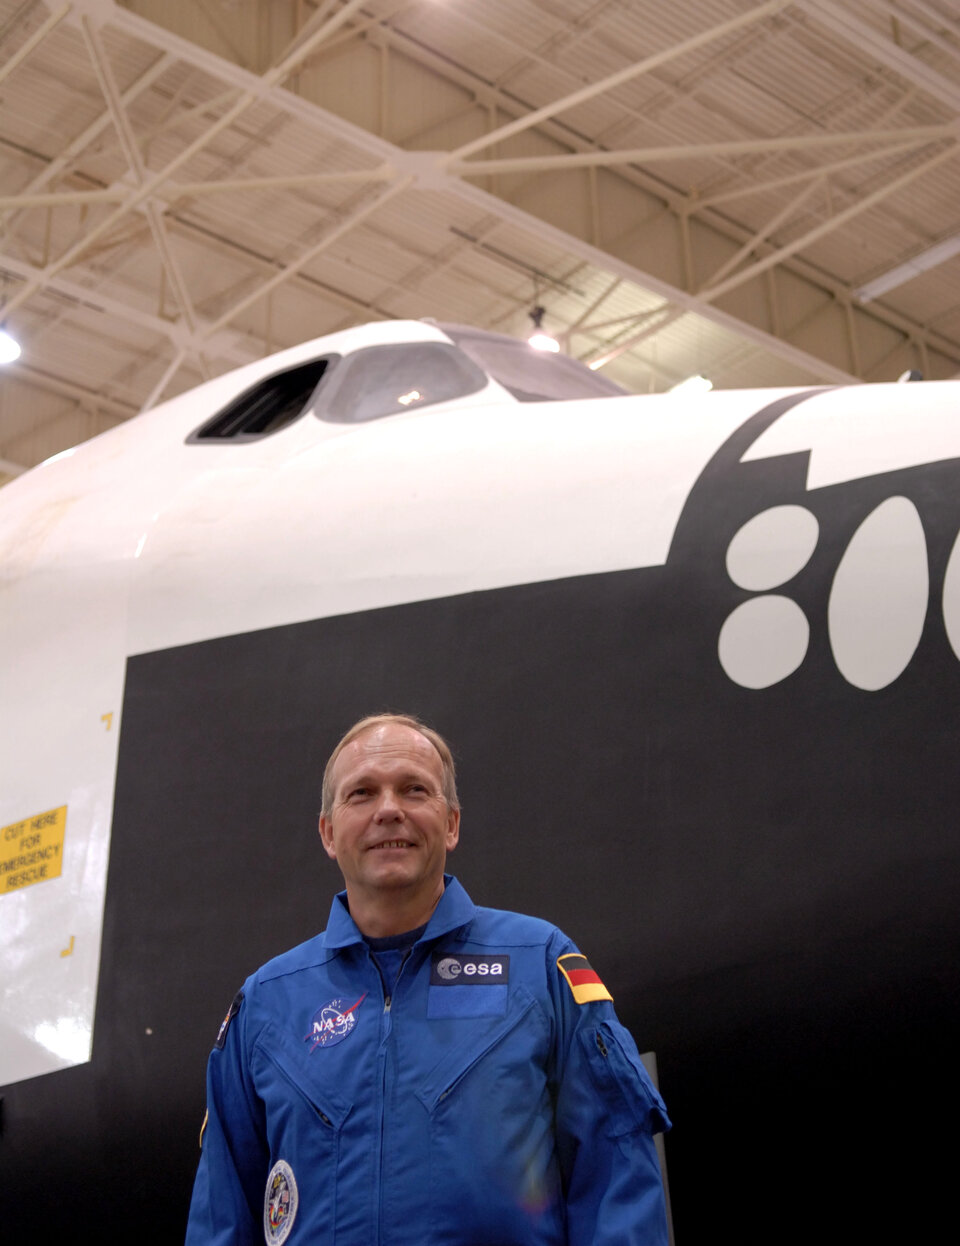 Eyharts will fly on the Space Shuttle together with ESA astronaut Hans Schlegel